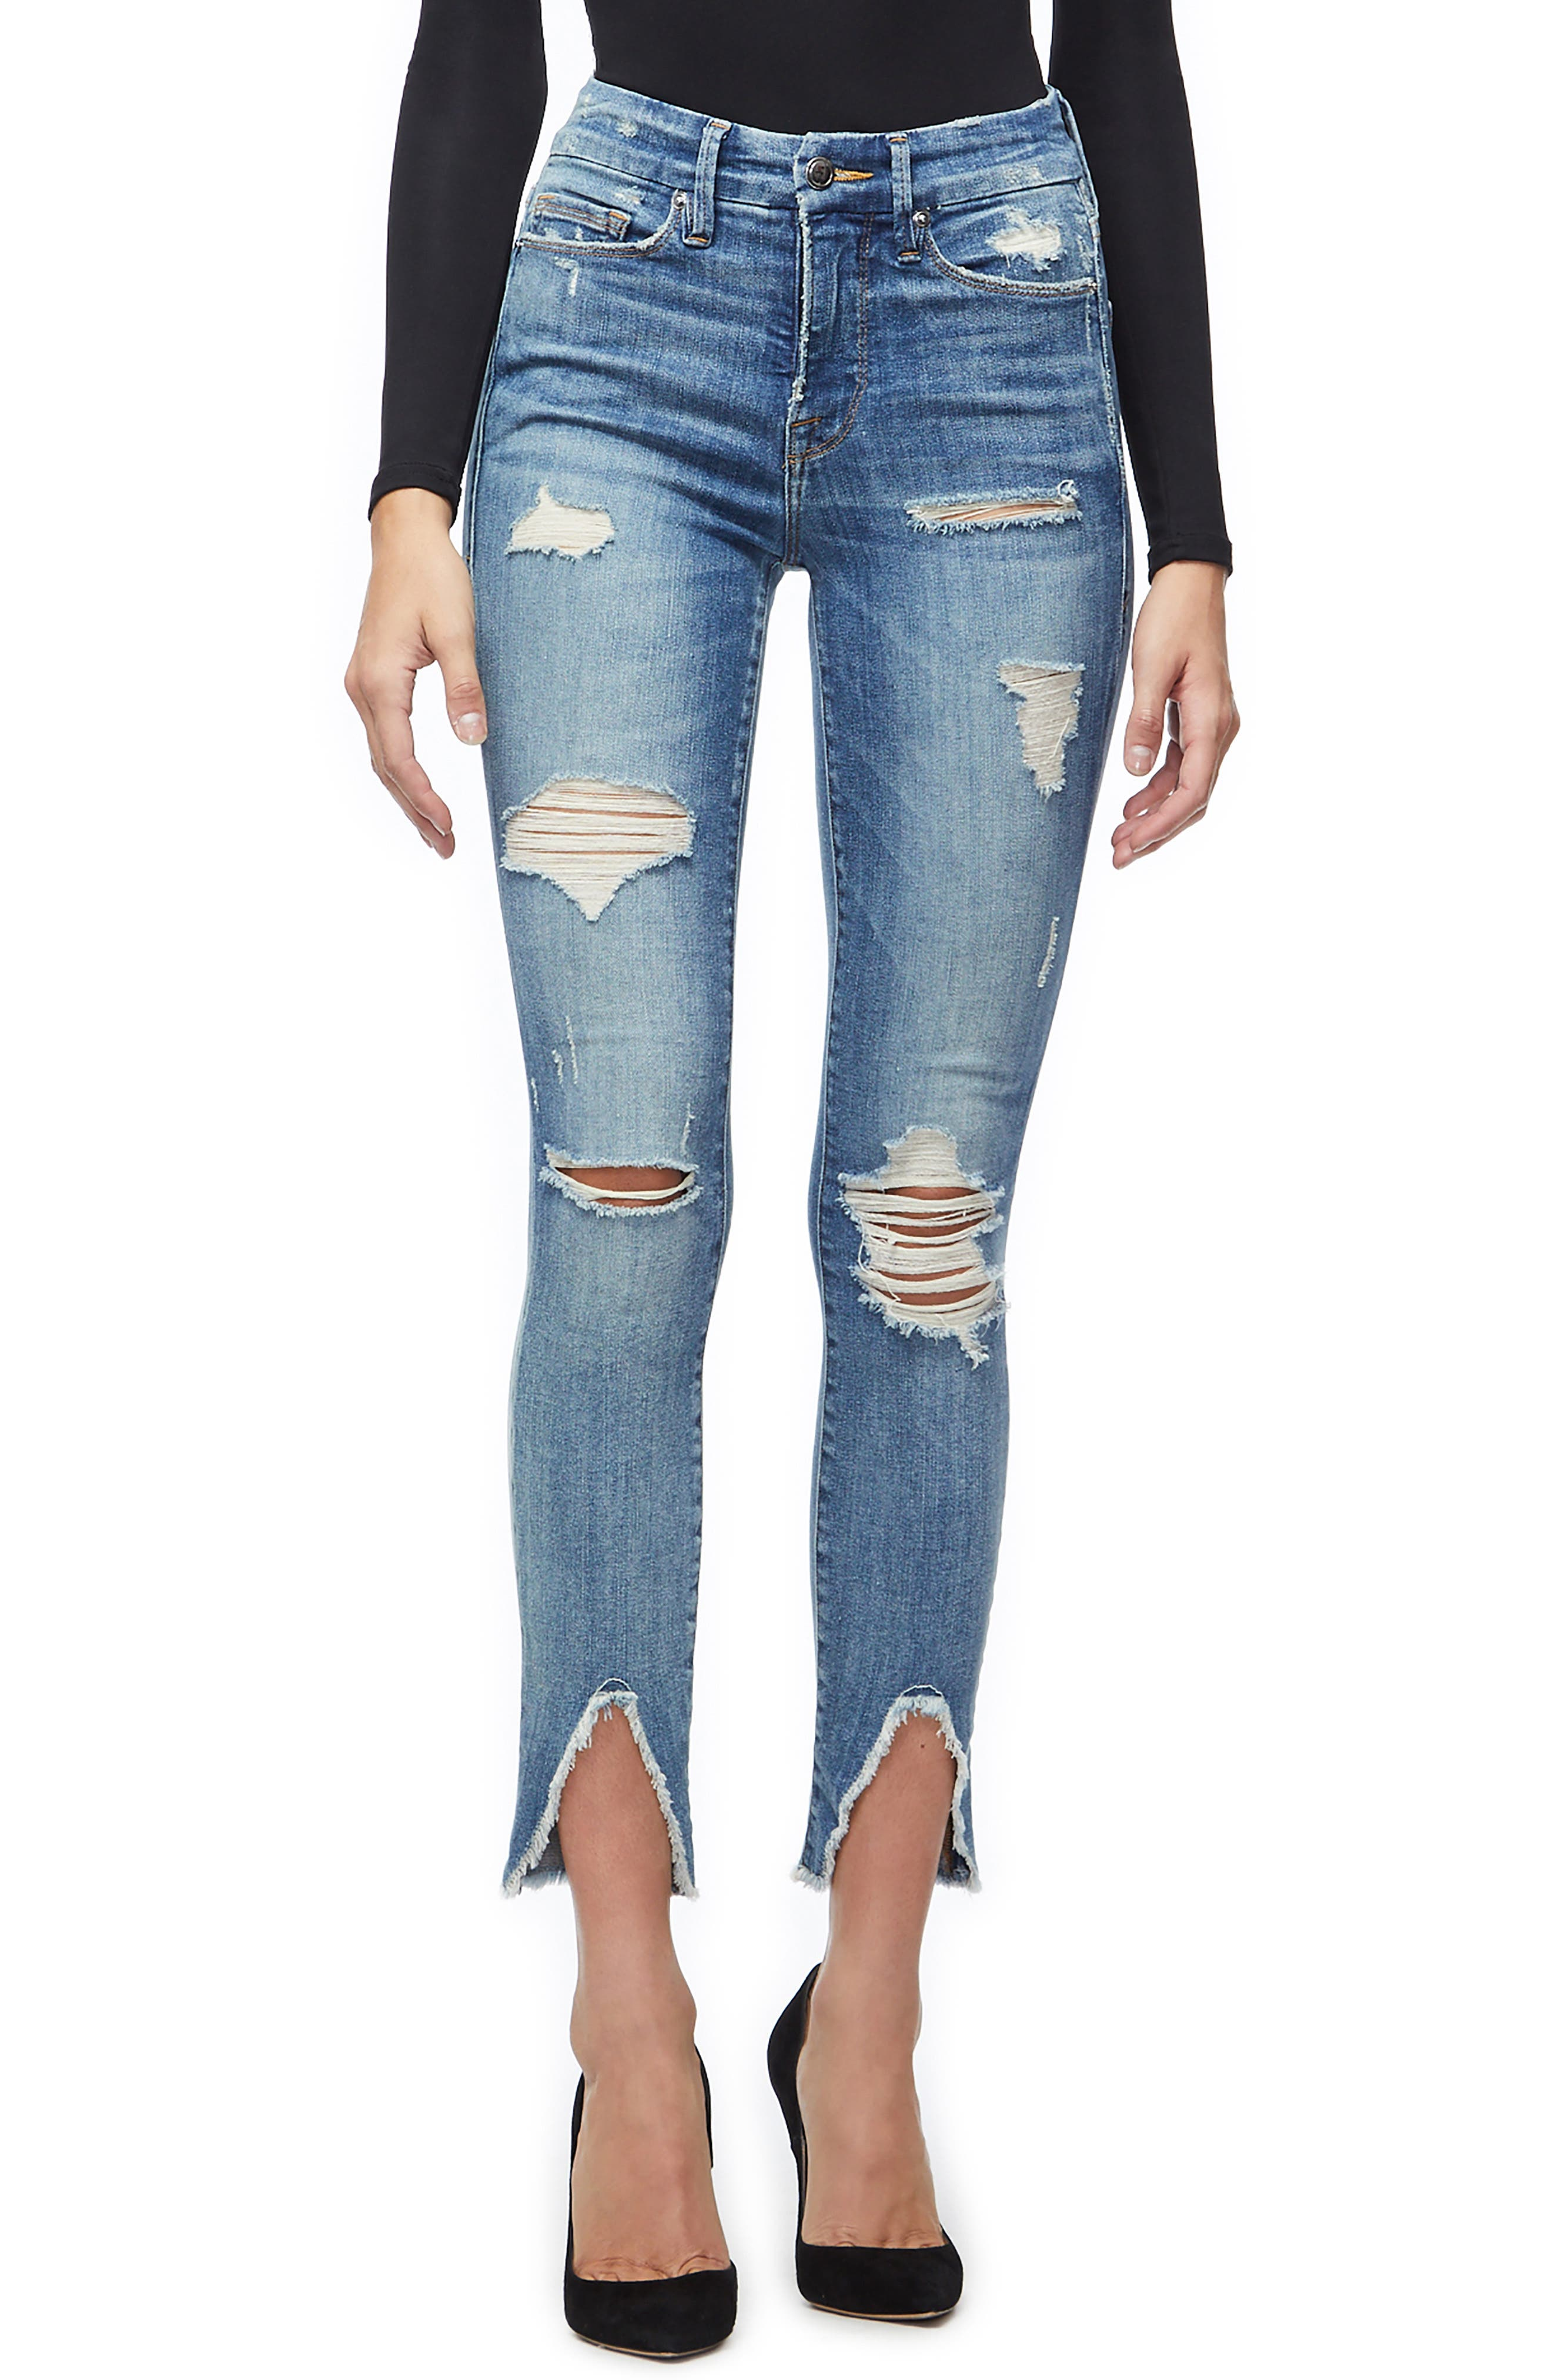 GOOD AMERICAN, Good Legs Ripped Skinny Jeans, Main thumbnail 1, color, BLUE 218